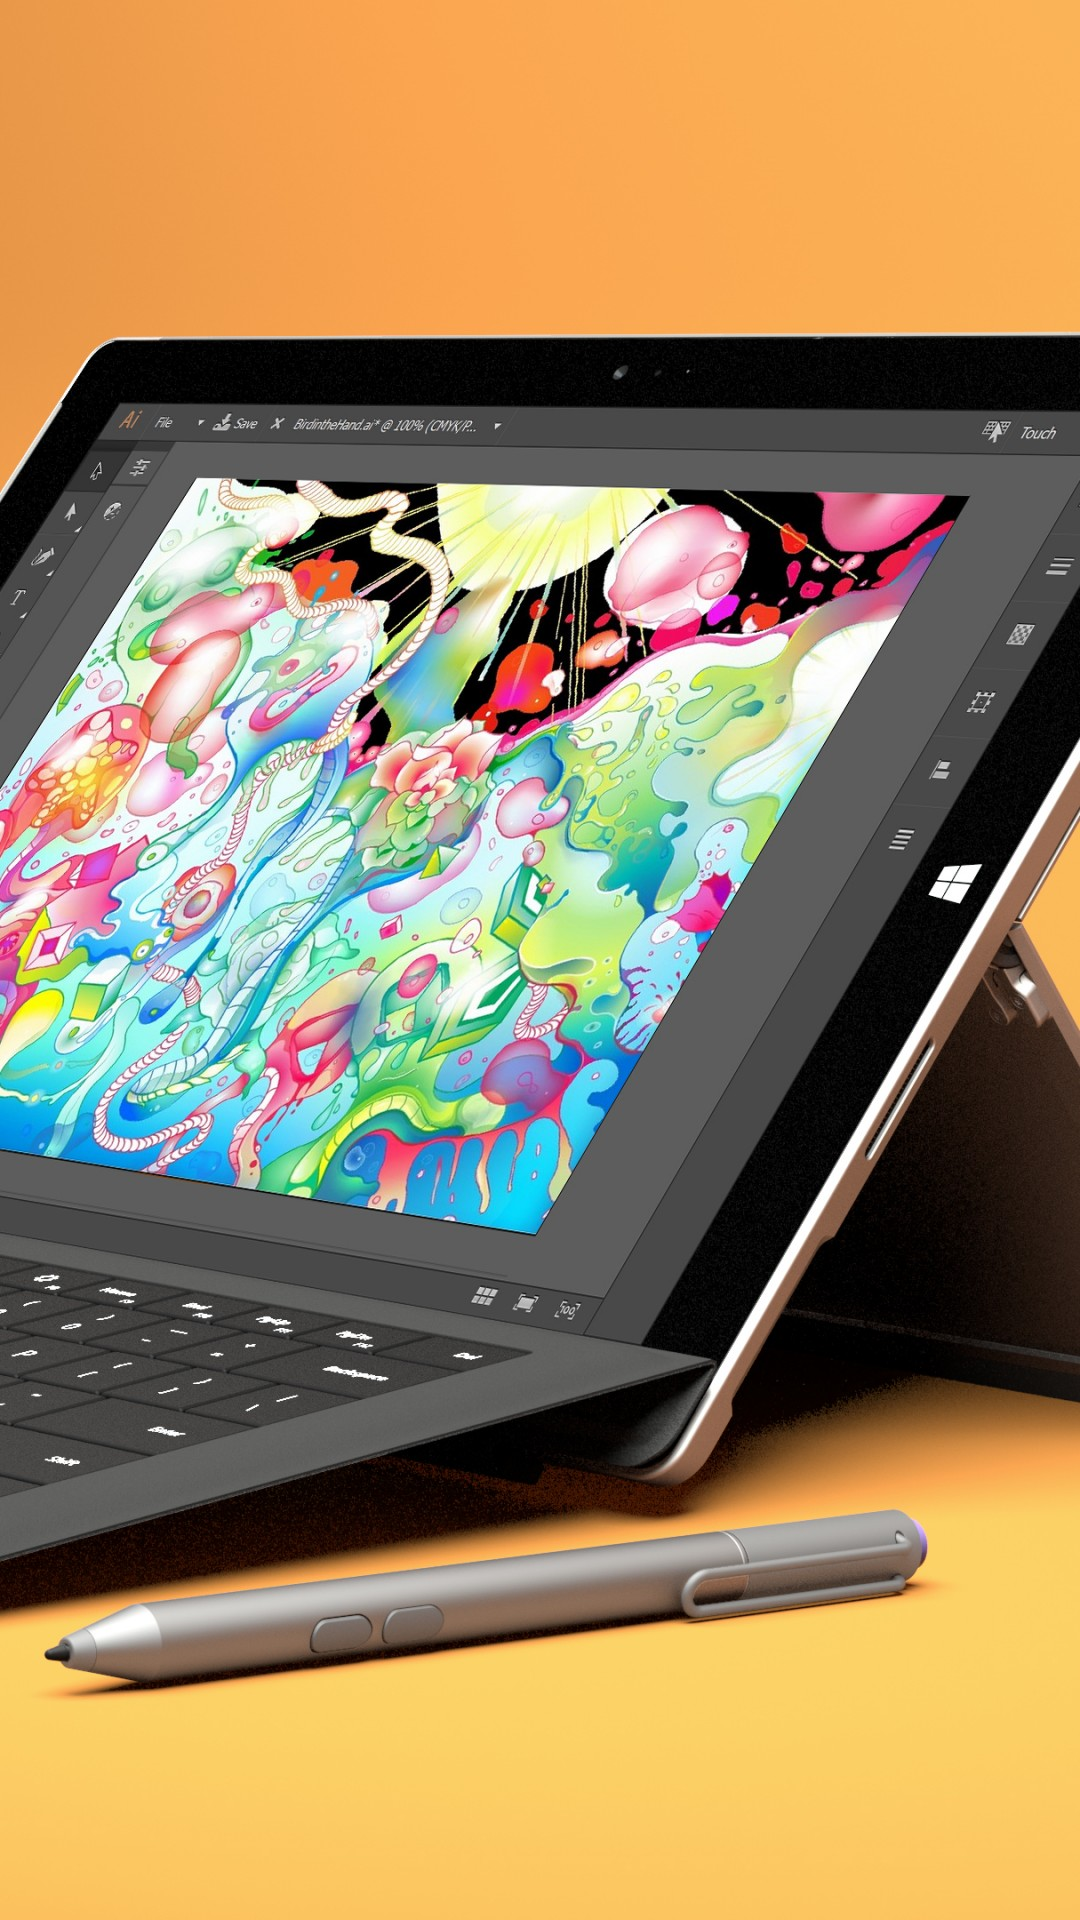 Wallpaper Microsoft Surface Pro 4 Tablet Hybrid Tablet